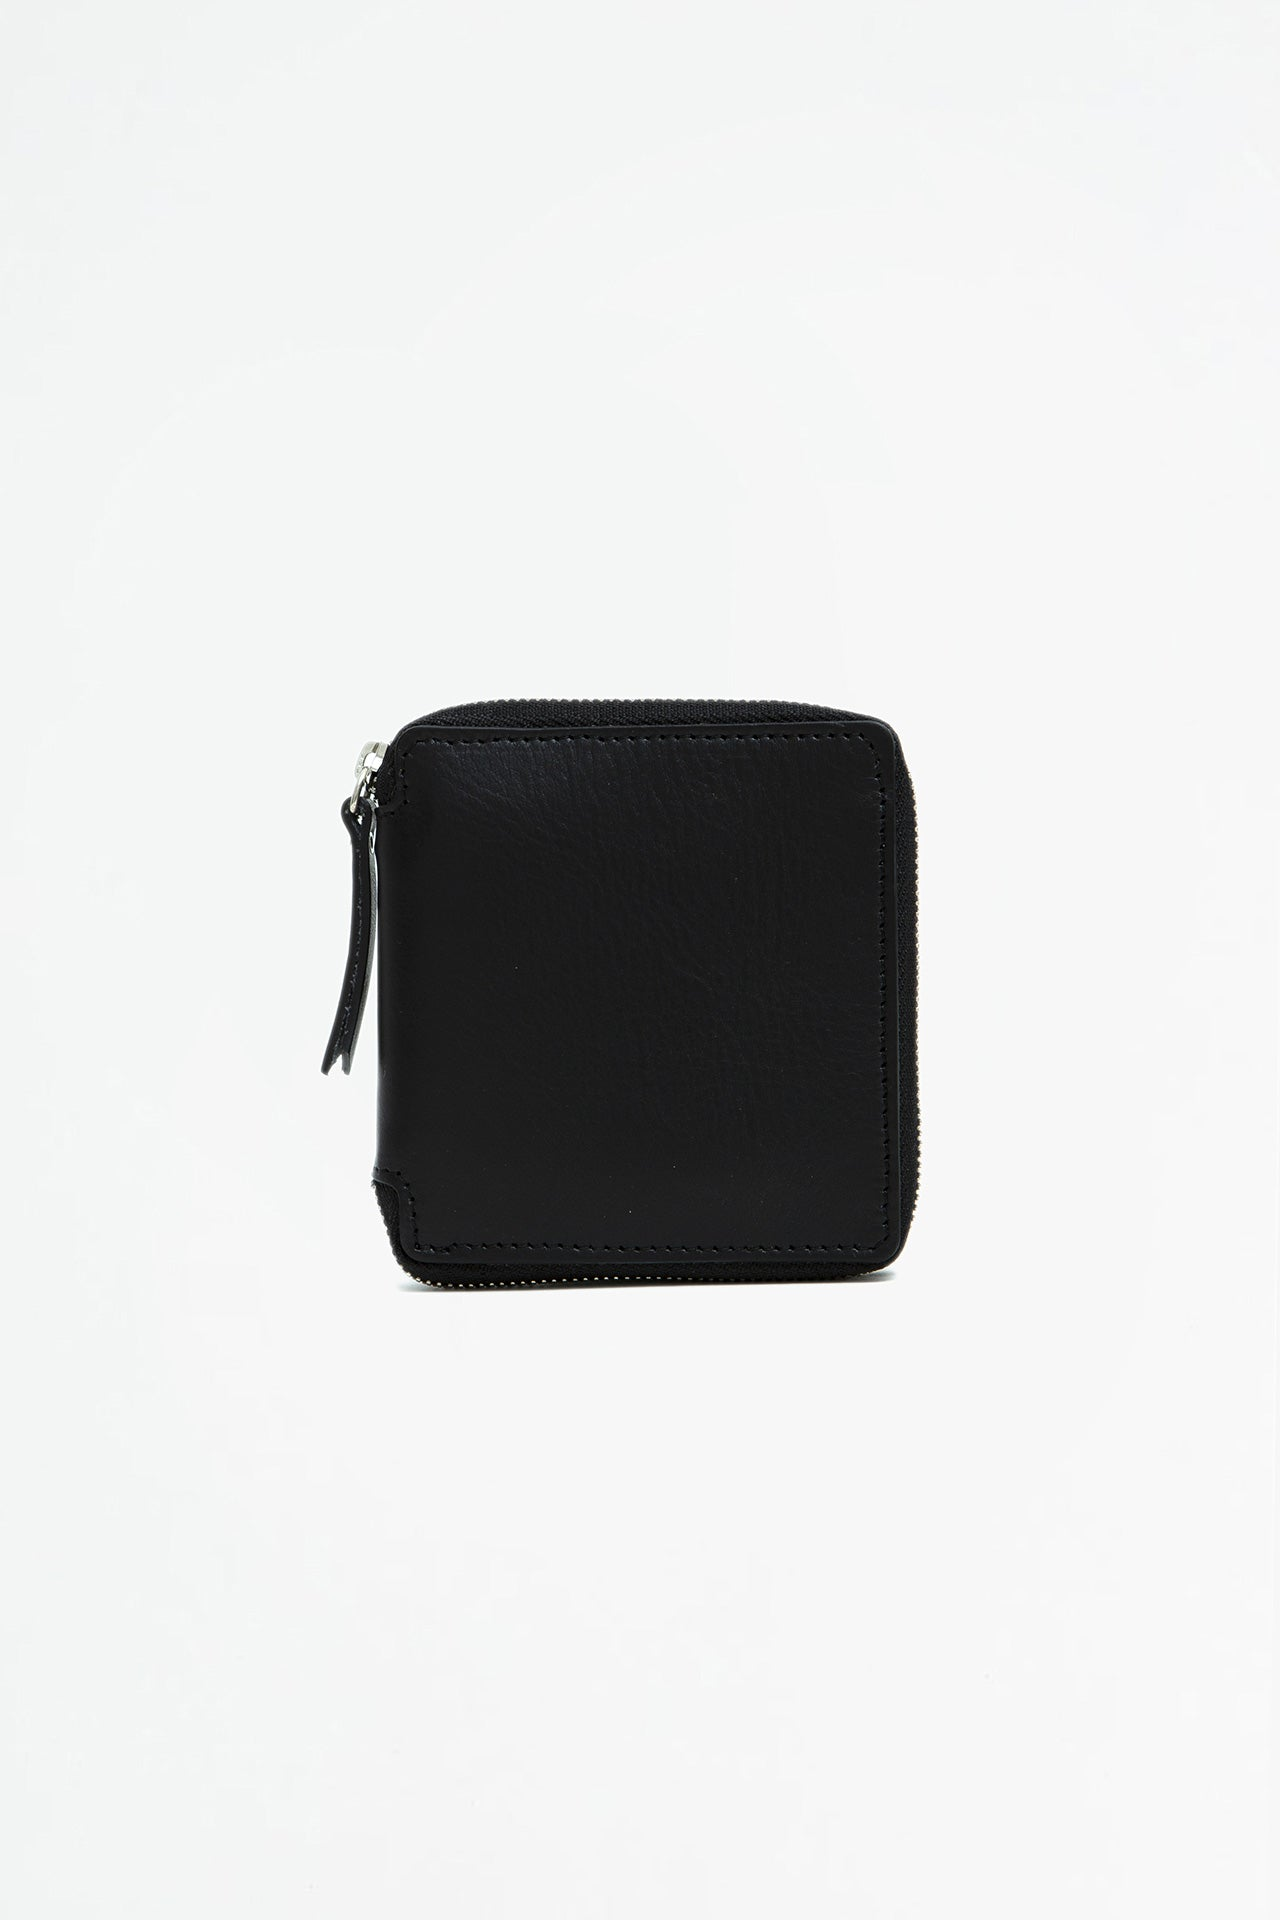 Big zipped wallet black